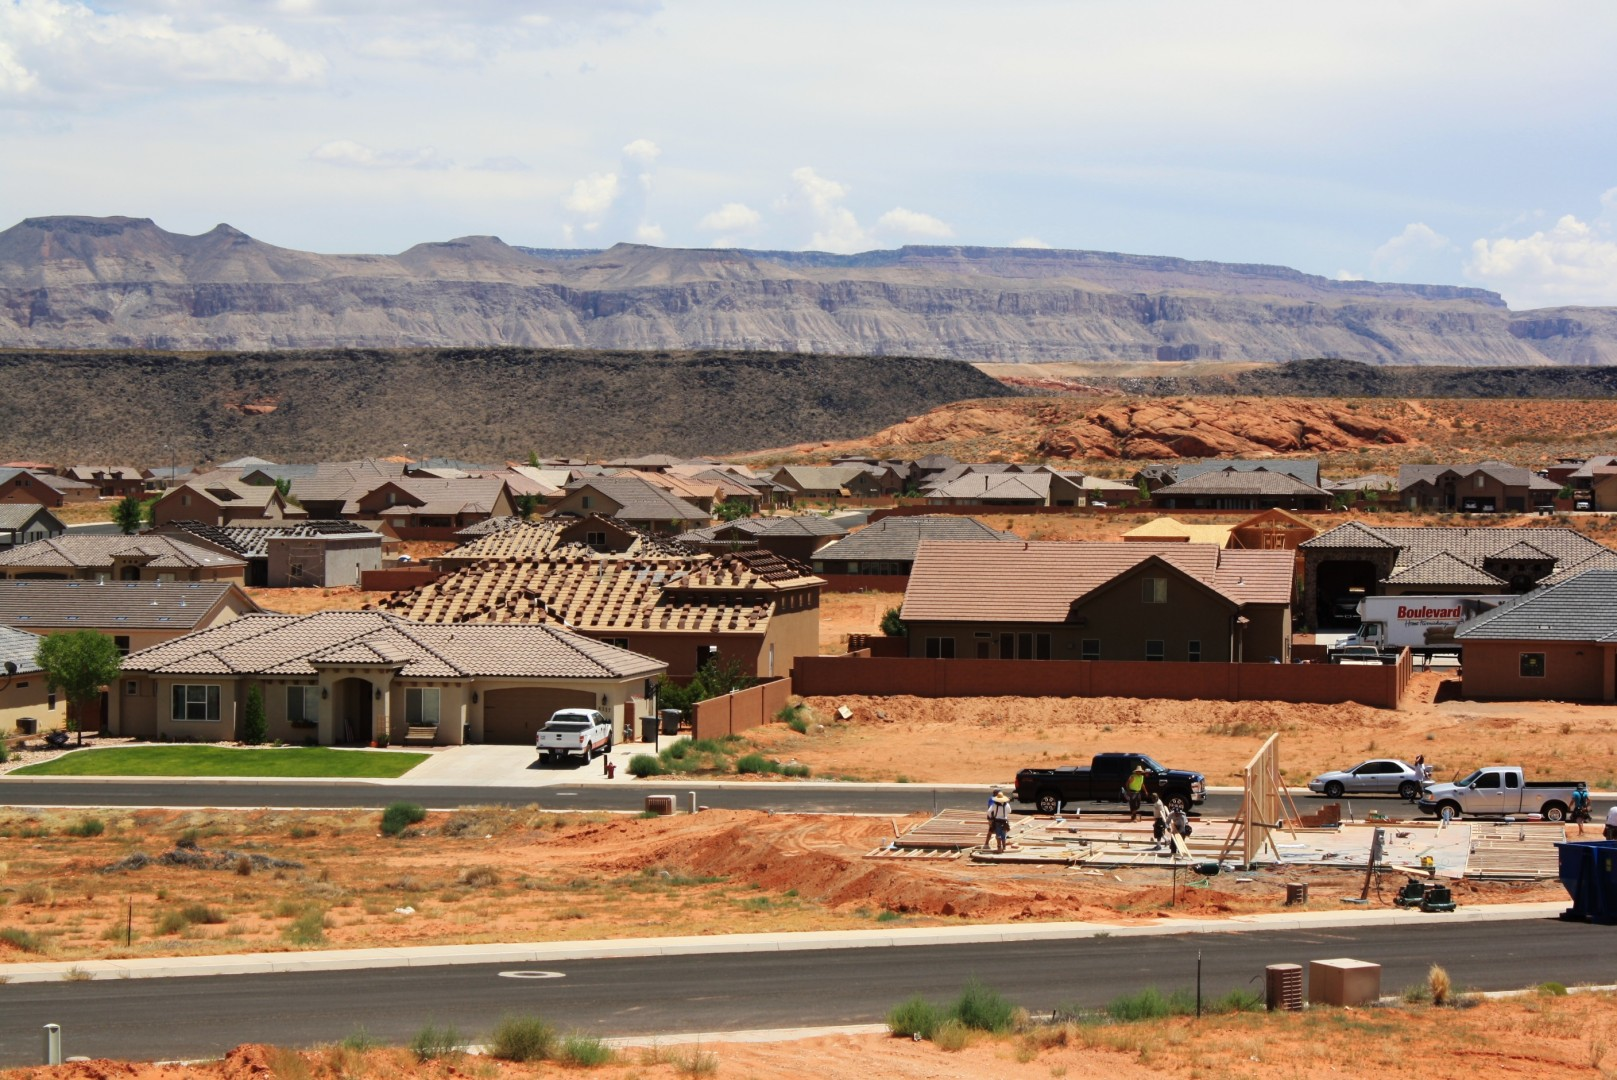 A street in Dixie Springs with homes in various stages of construction, Washington County, Utah, July 25, 2013 | Photo by Reuben Wadsworth, St. George News